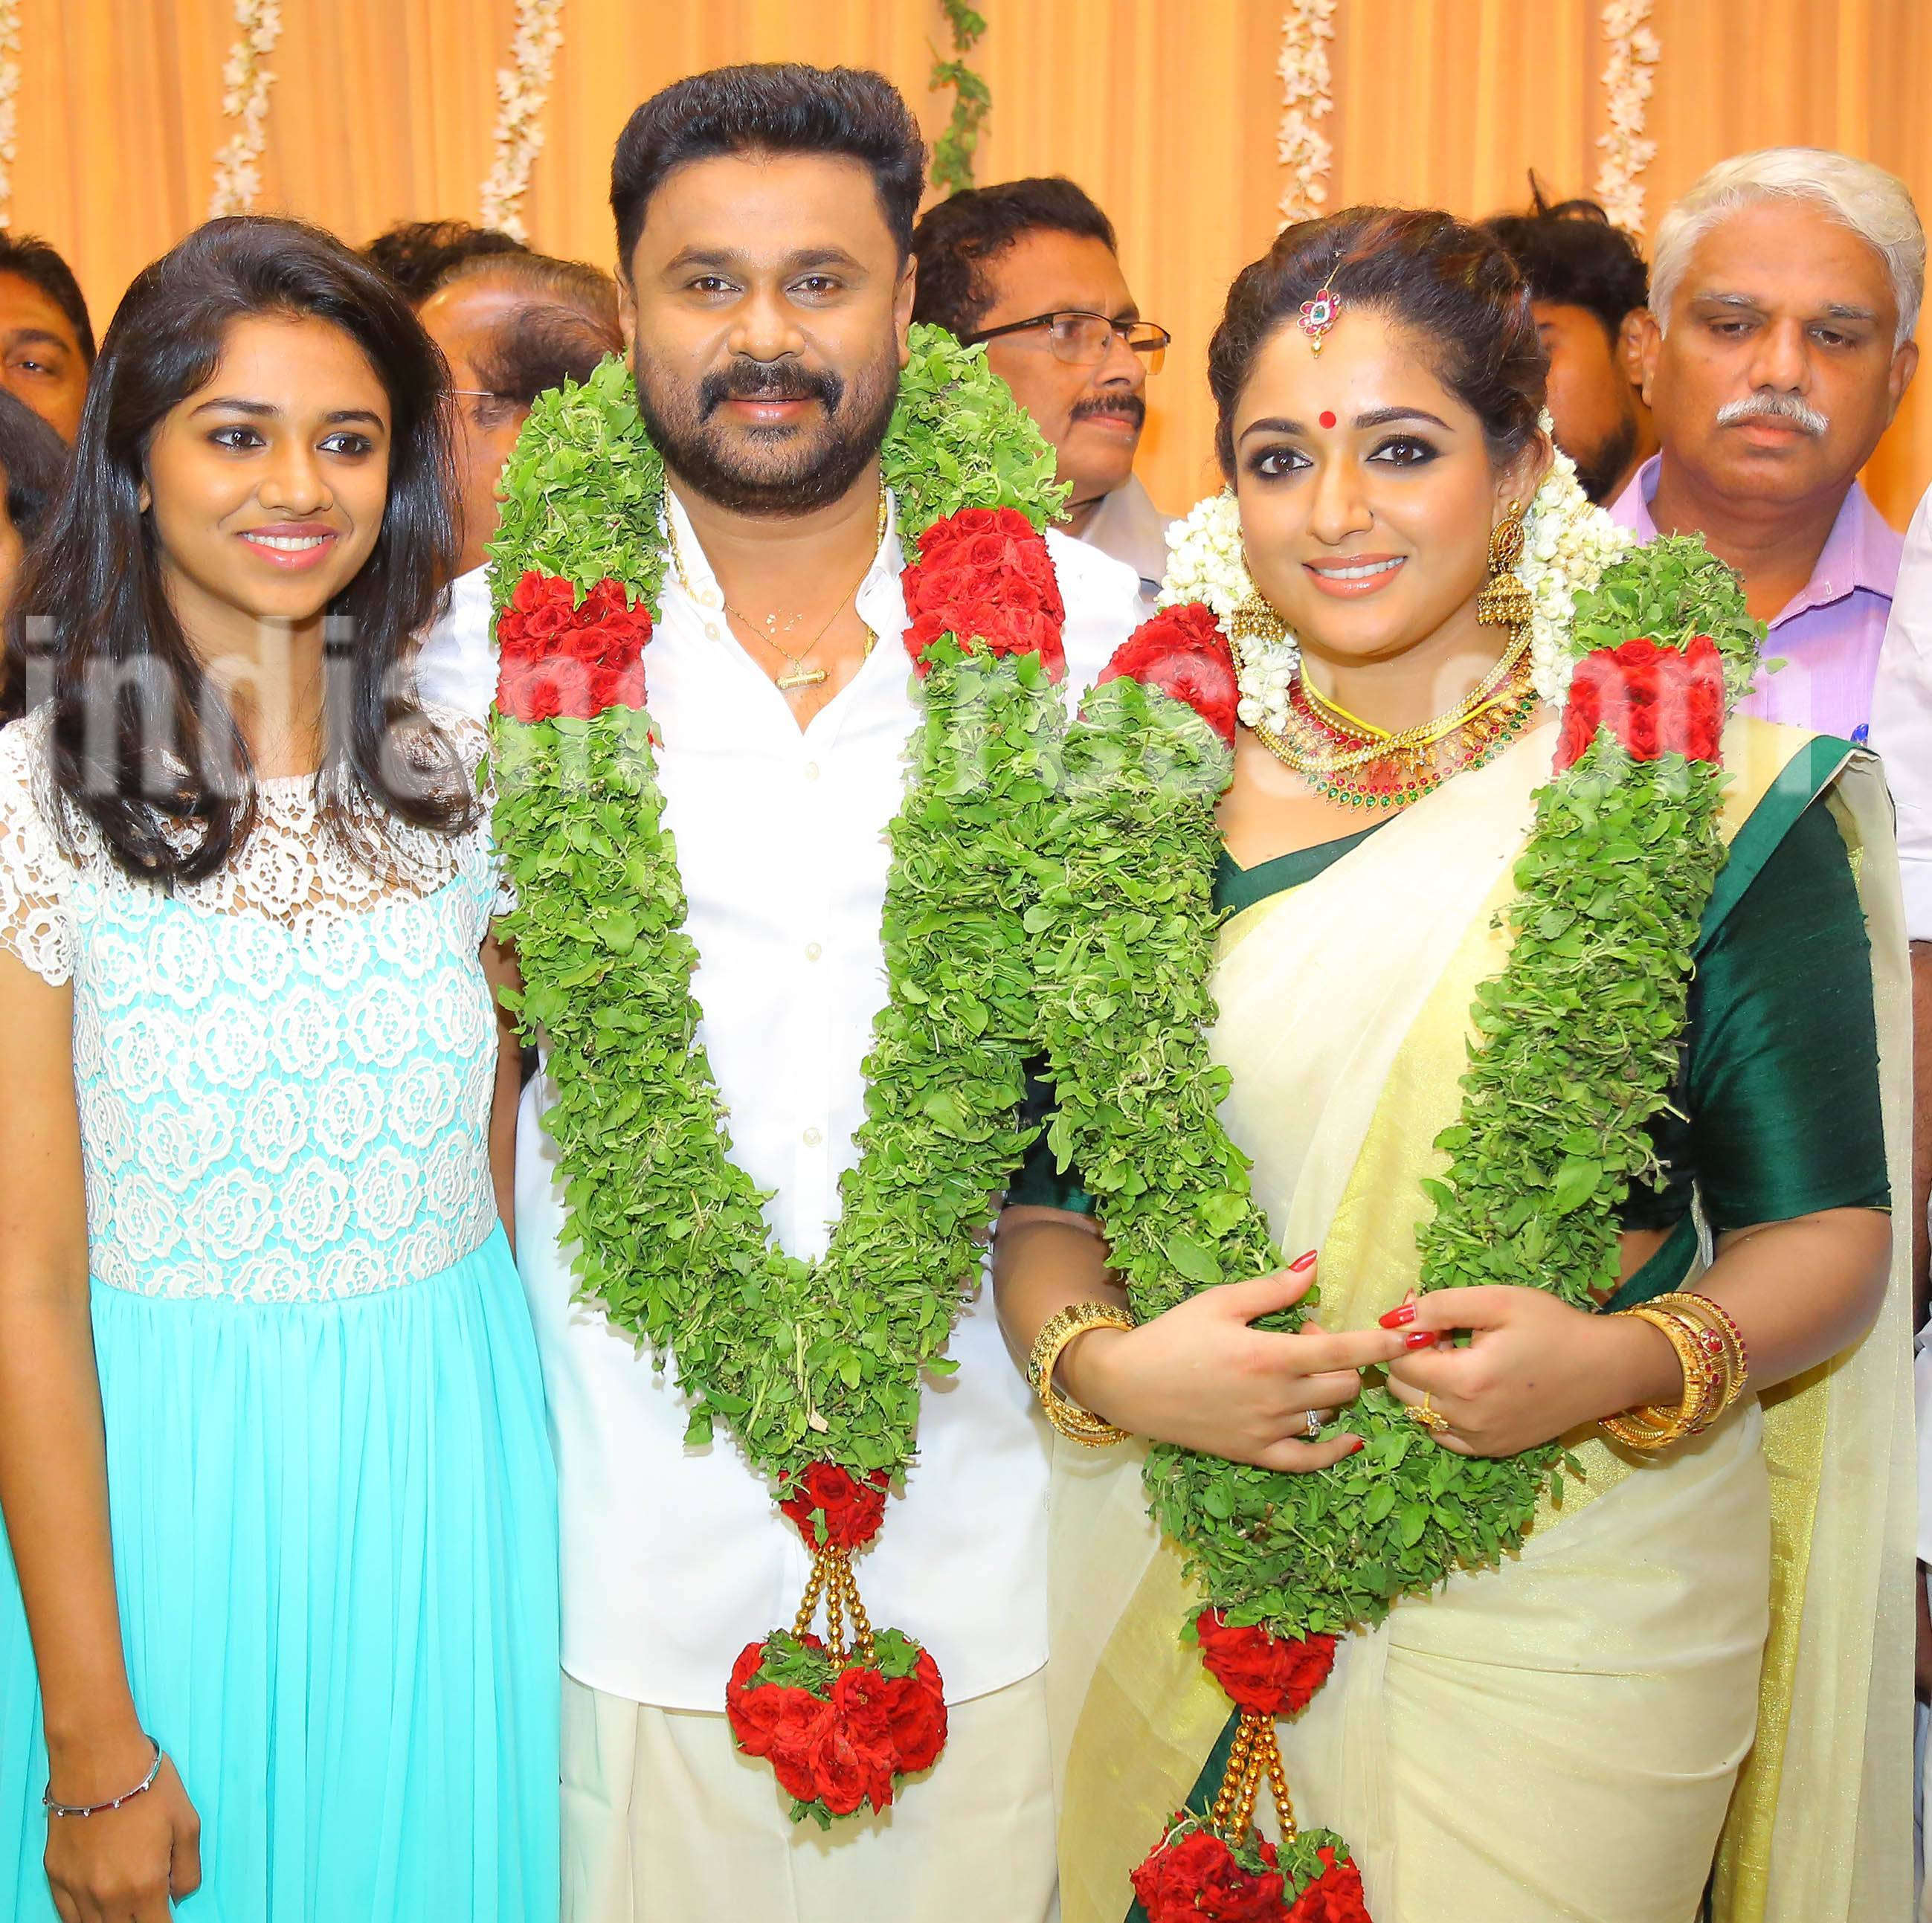 dileep-and-kavya-madhavan-wedding, dileep, kavya madhavan, meenakshi, dileep wedding, kavya wedding